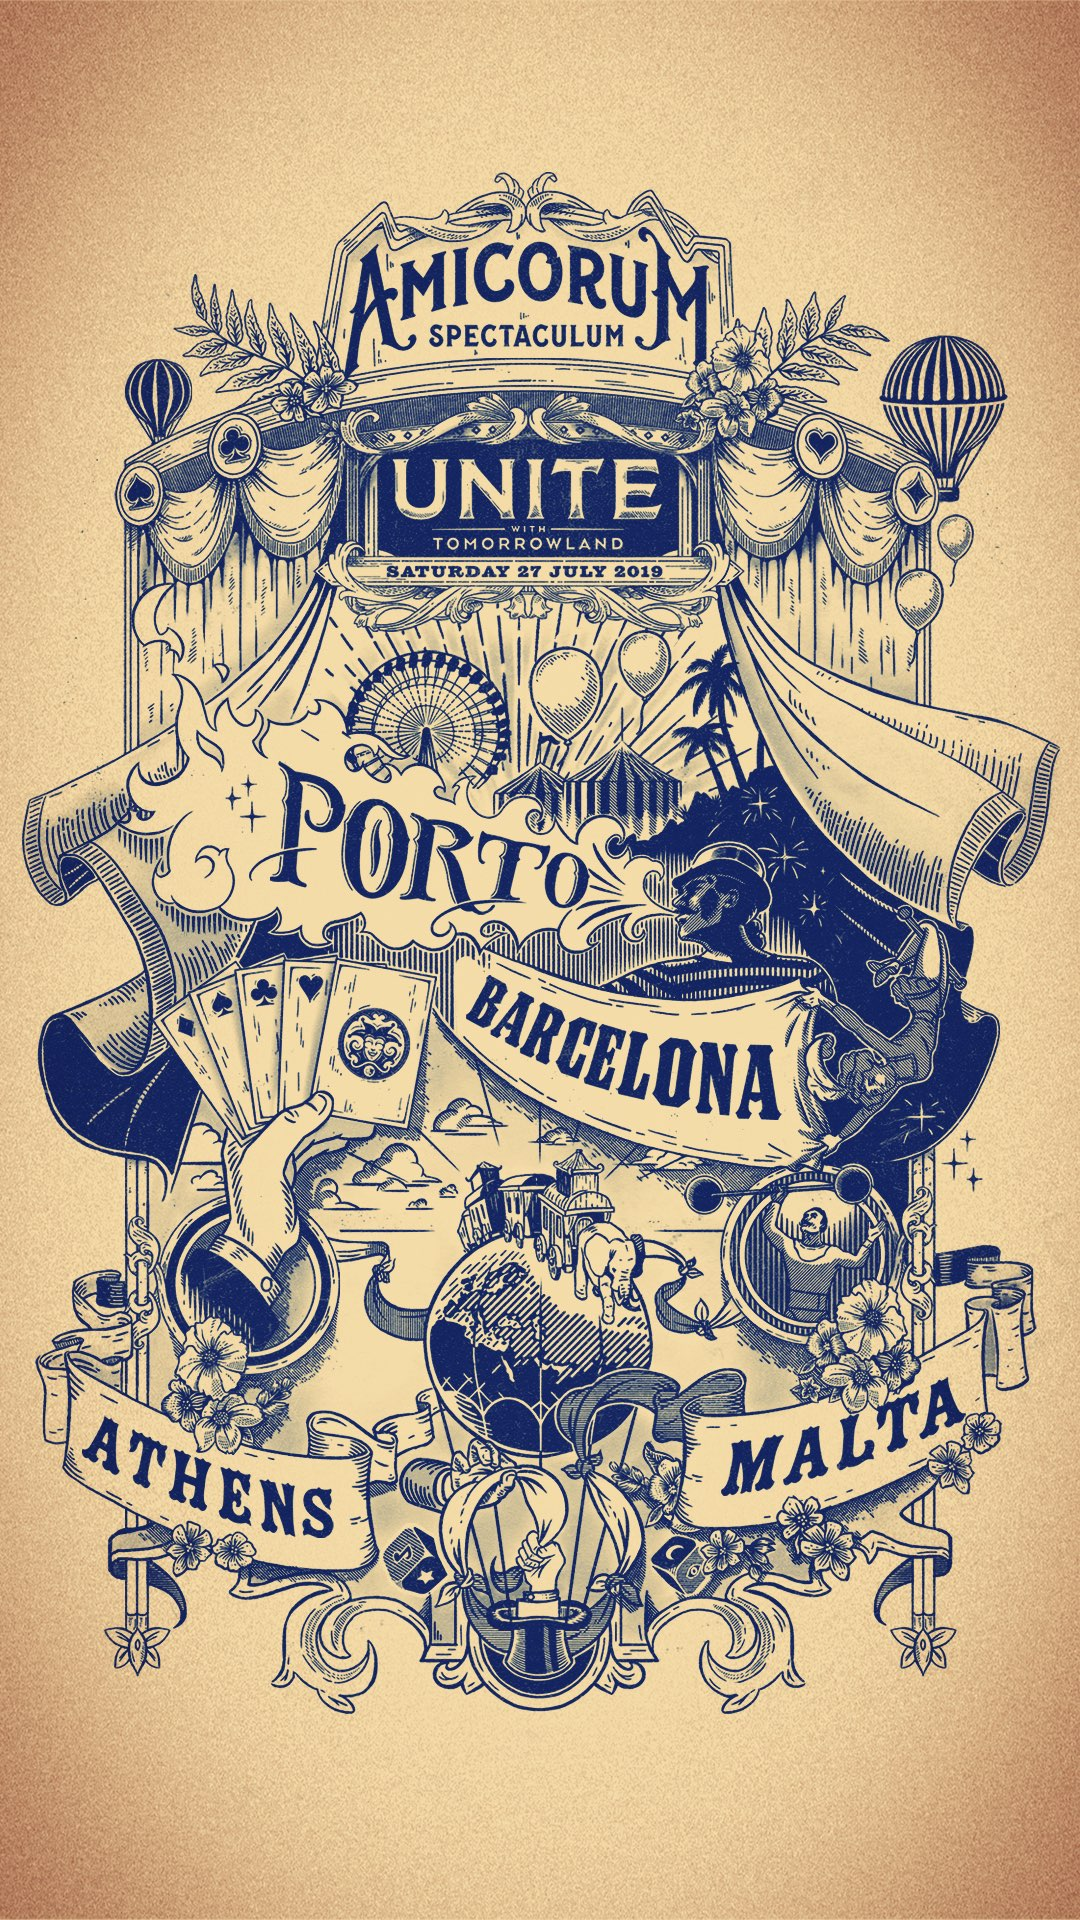 Unite Tomorrowland España.jpg